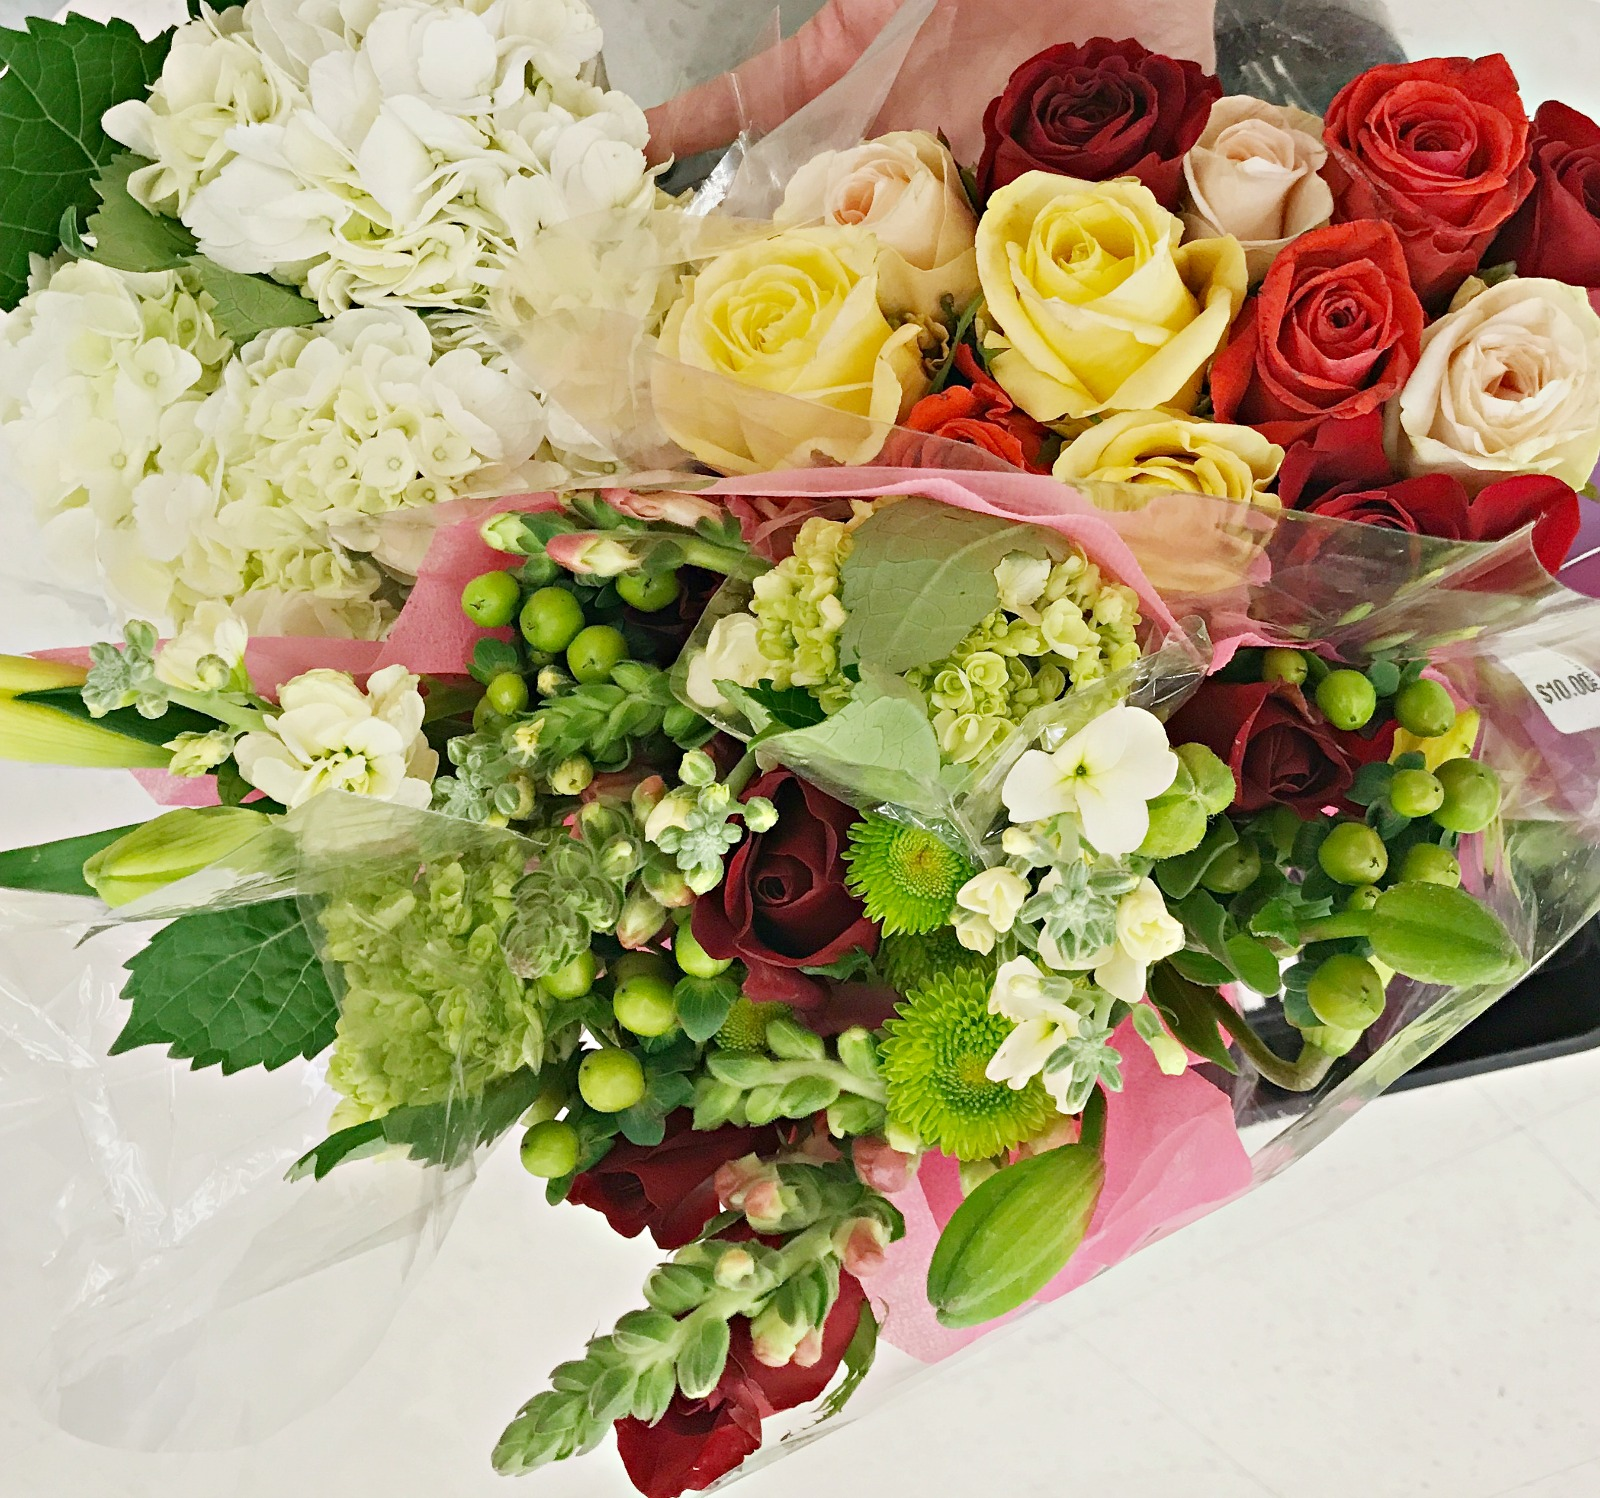 Diy prom bouquet sweet parrish place i ended up purchasing three different bunches of flowers some hydrangea some roses and then a bunch that had red roses and various other things izmirmasajfo